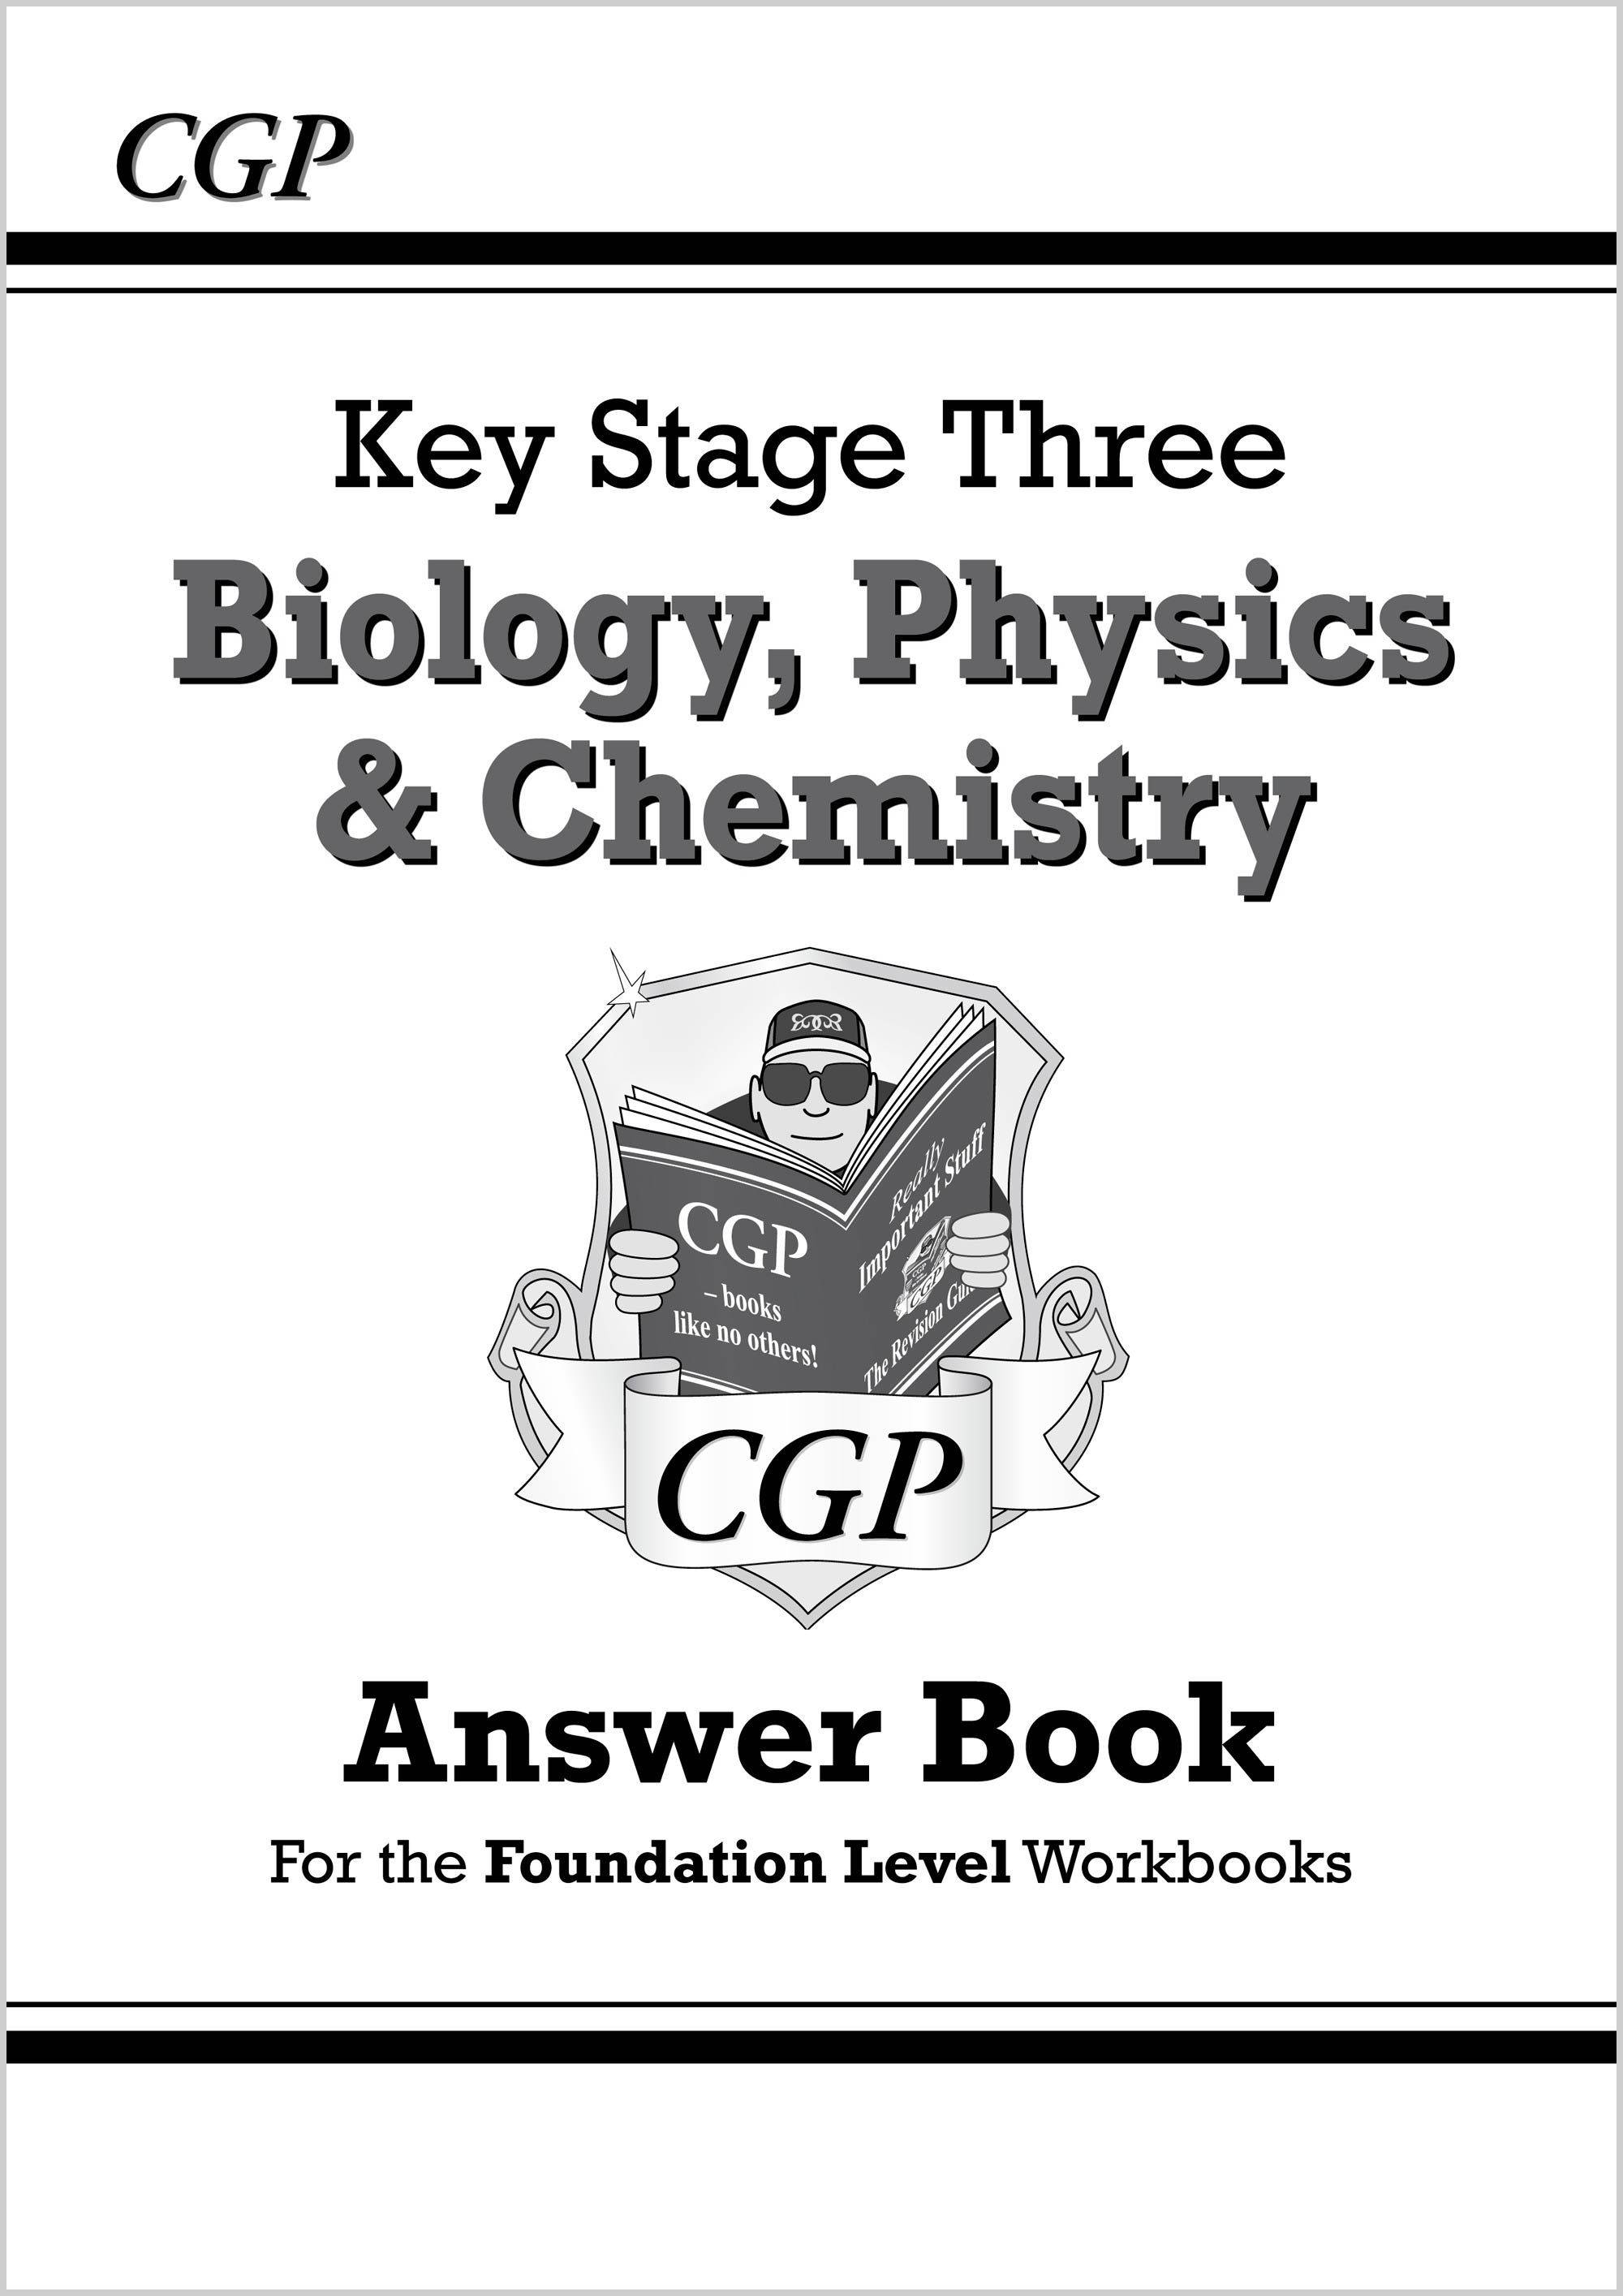 SFA32 - KS3 Science Answers for Workbooks (Bio/Chem/Phys) - Foundation